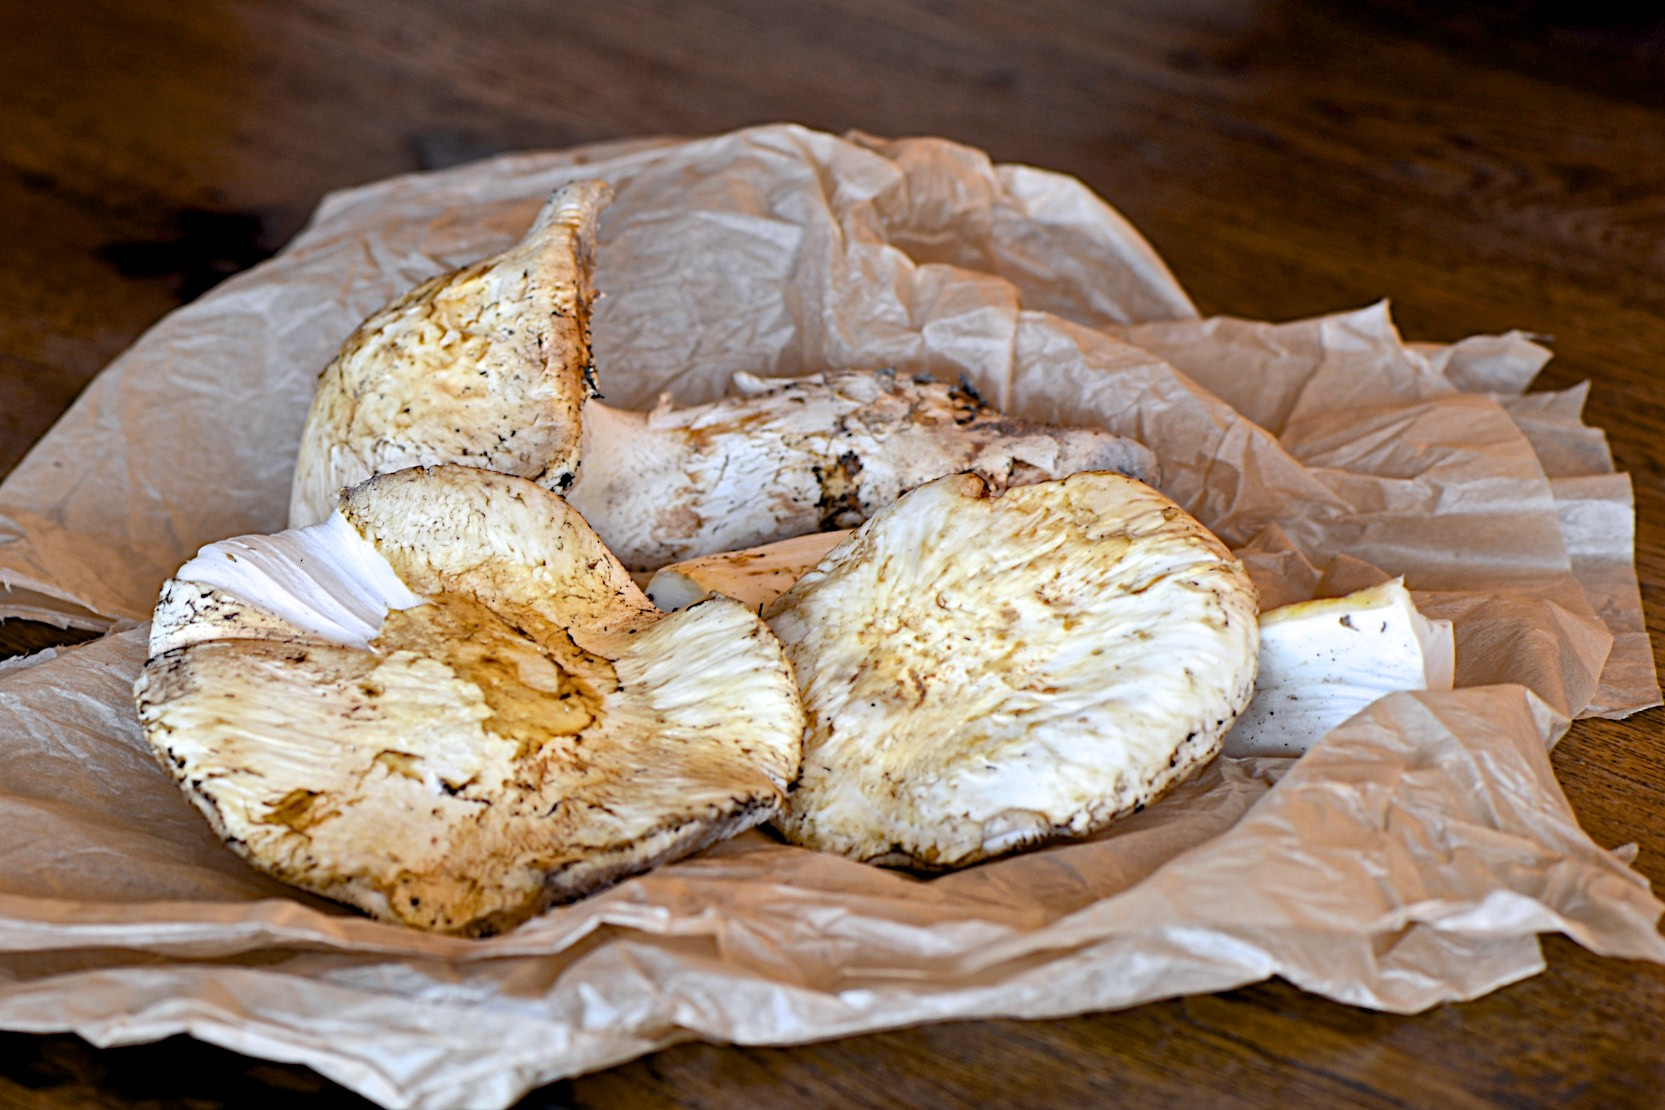 Wild pine mushrooms